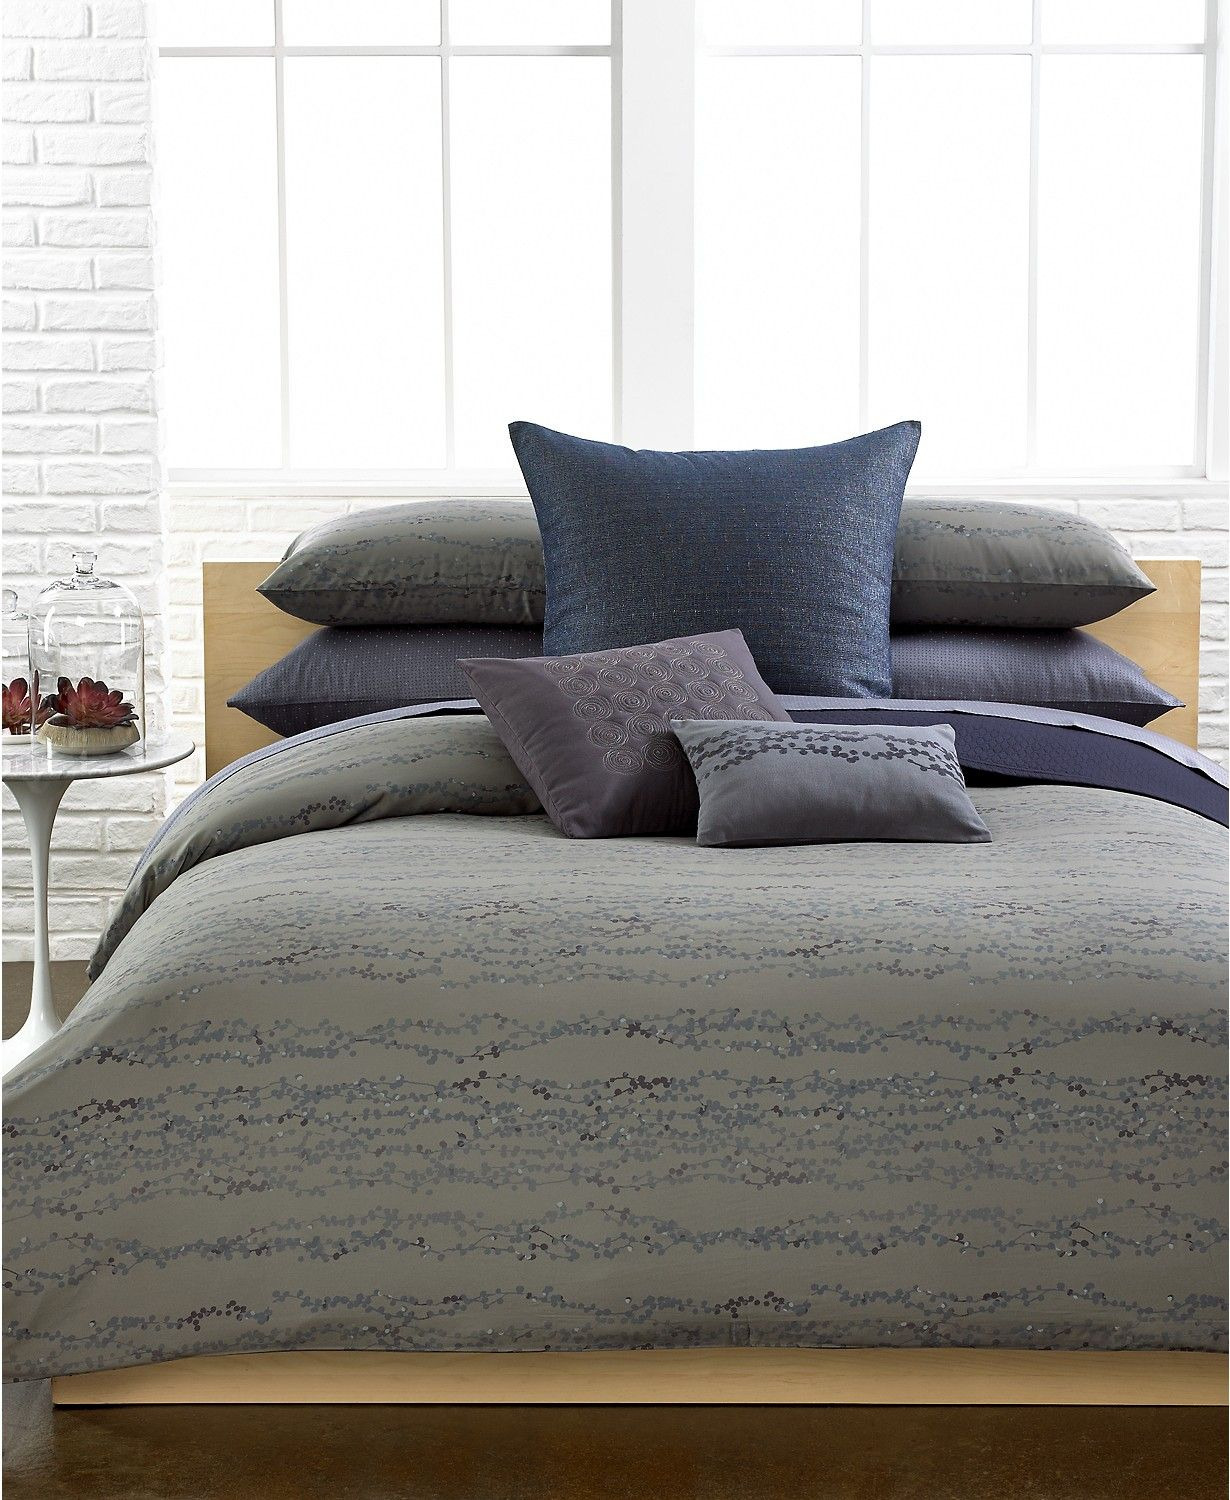 Macy's Bed Sheets Reviews Lovely Calvin Klein Last Act Chambray Sparkle European Sham